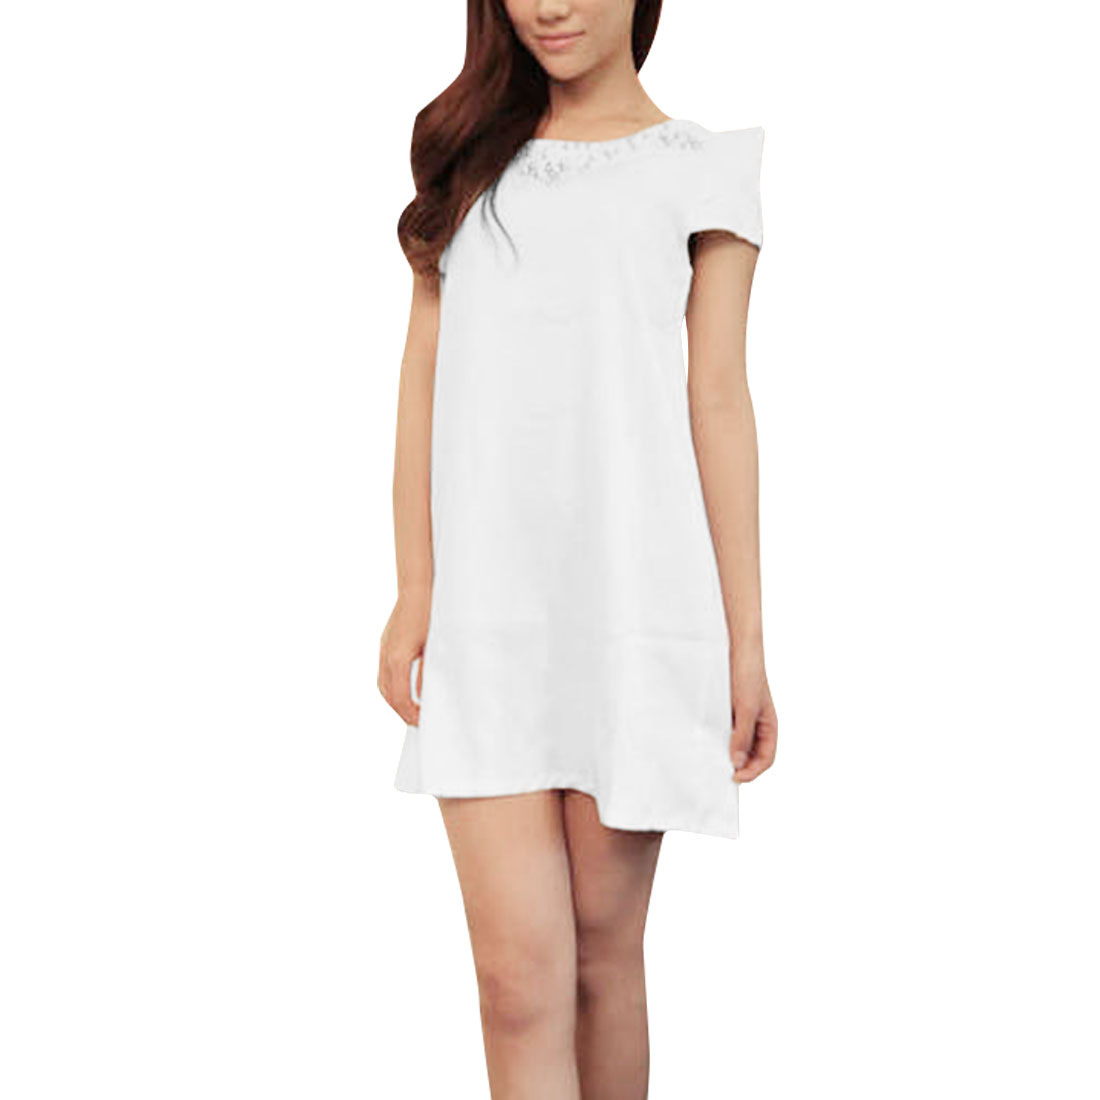 Lady Cap Sleeve Fake Pearls Front White Mini Dress S